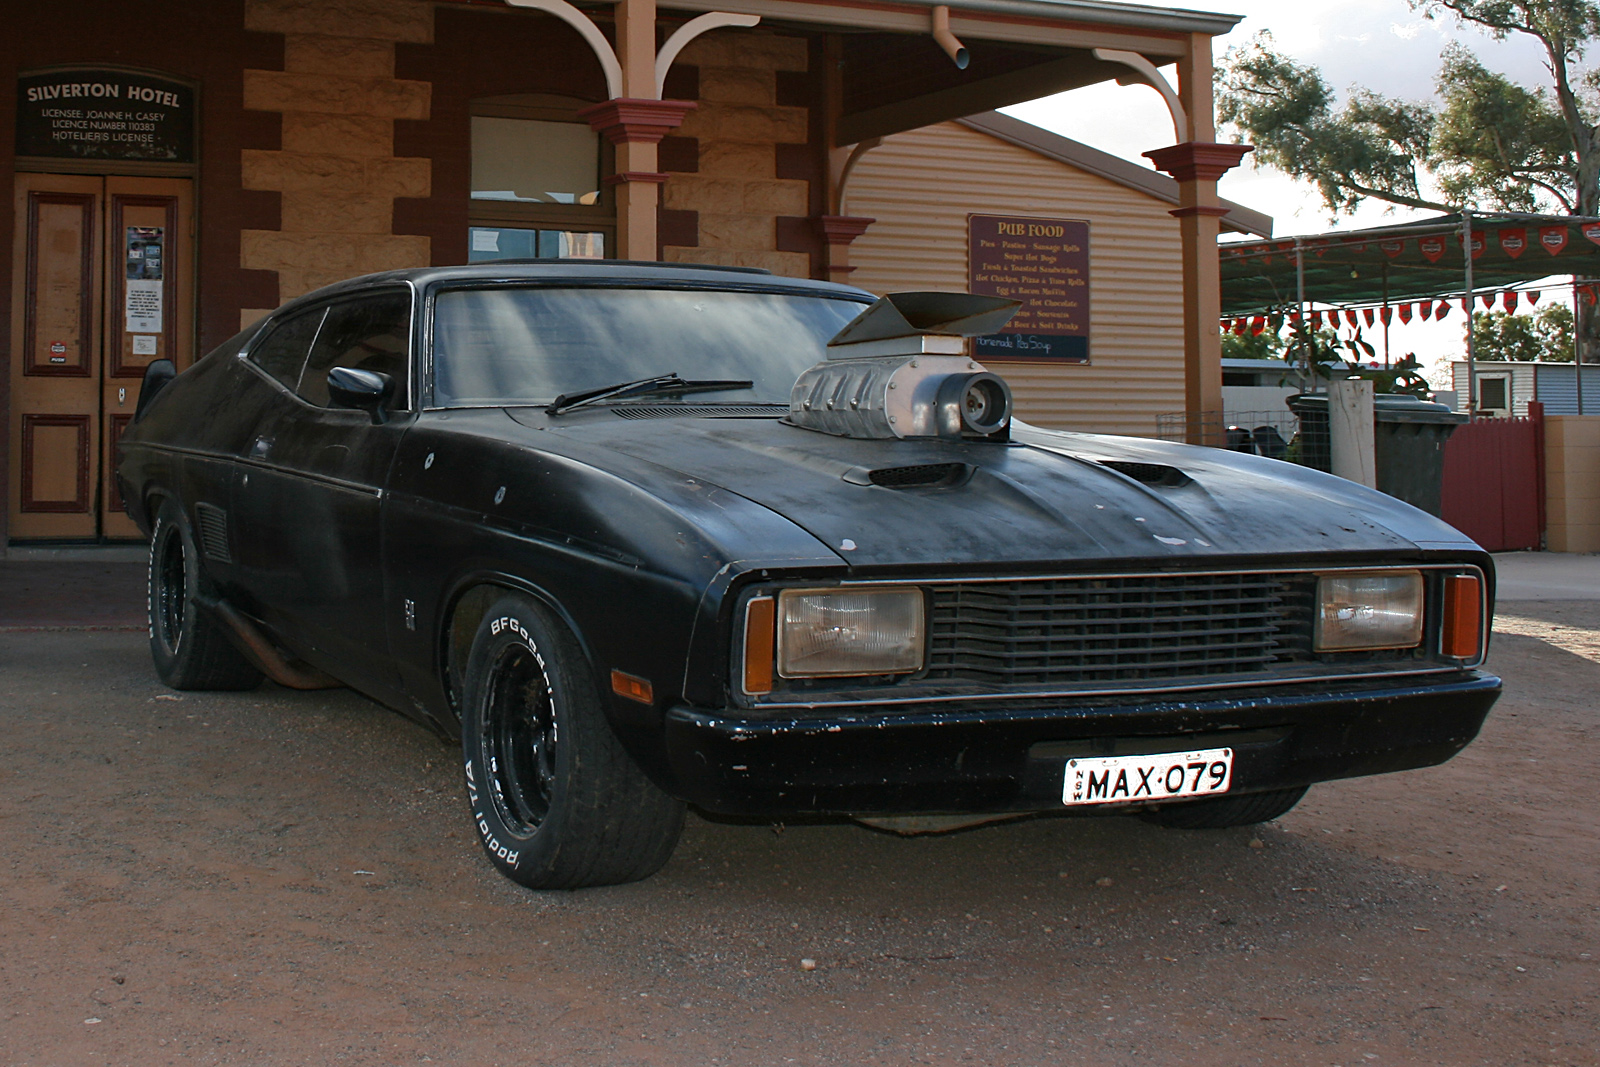 2162587 1975 Ford Falcon XB besides Watch besides Ford Falcon Xb Gt Coupe 1973 V8 Interceptor The Mad additionally Aussie muscle together with All Cars In Mad Max 1979. on xa ford falcon interceptor